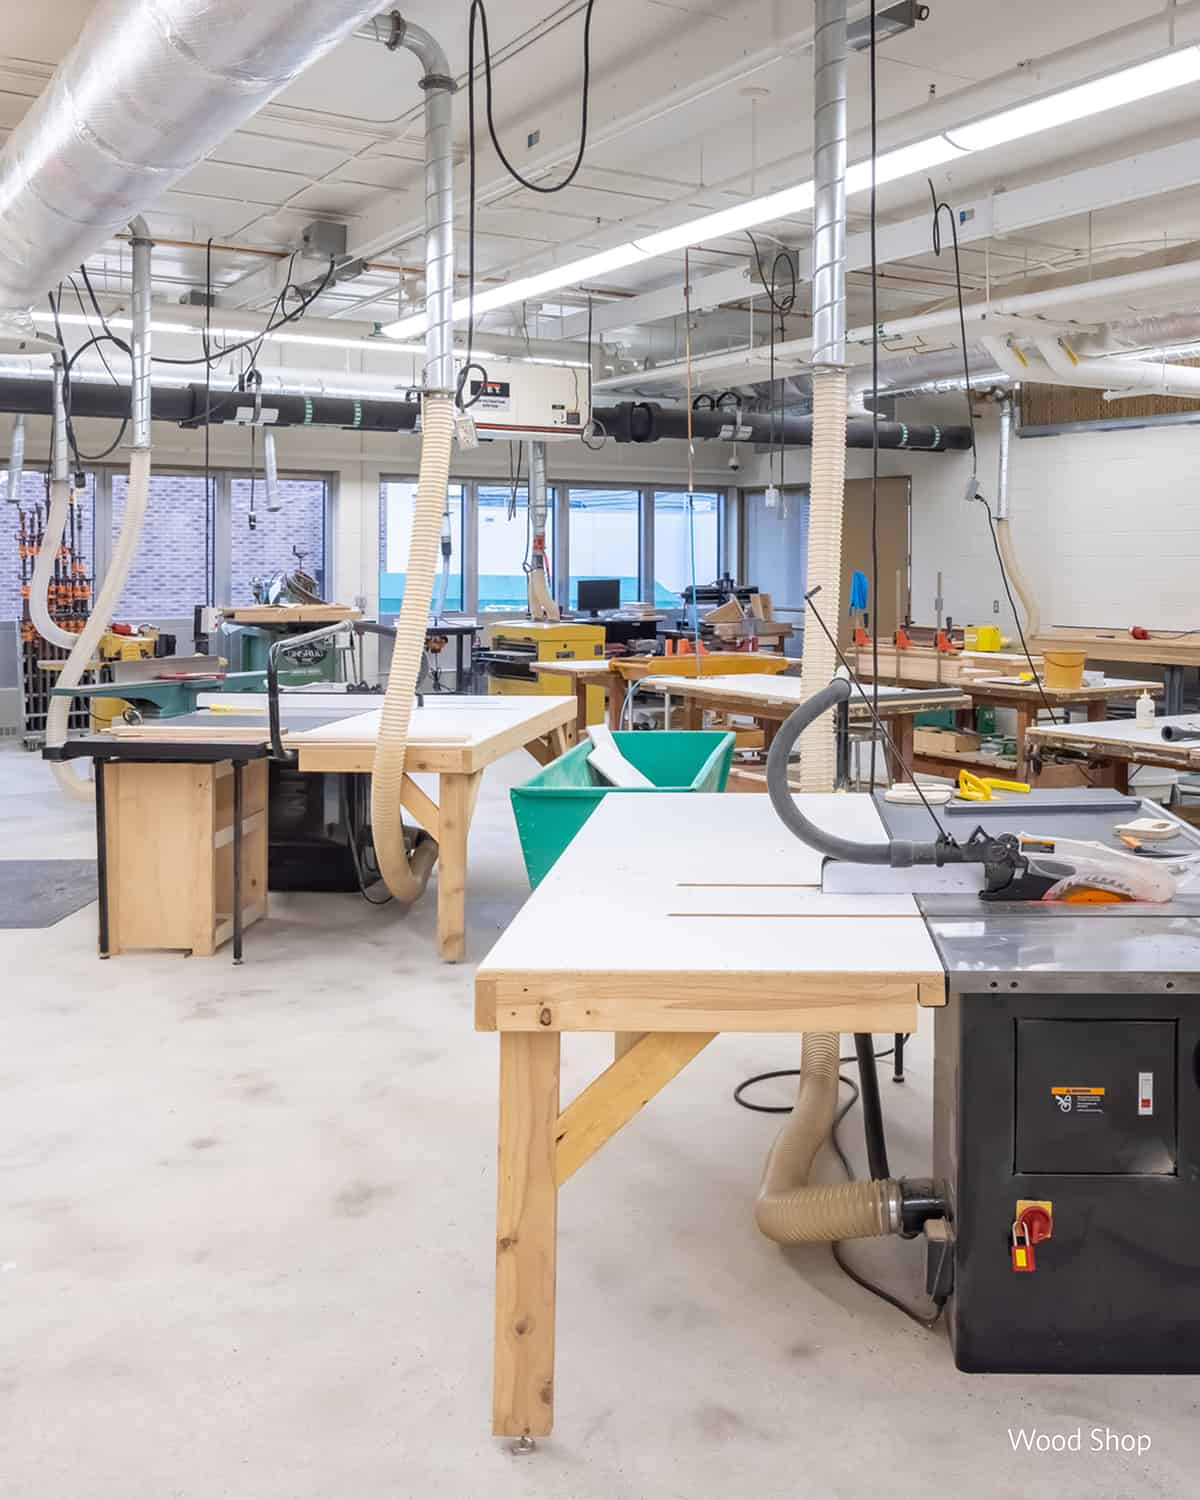 A wood shop for patients to practice working skills.